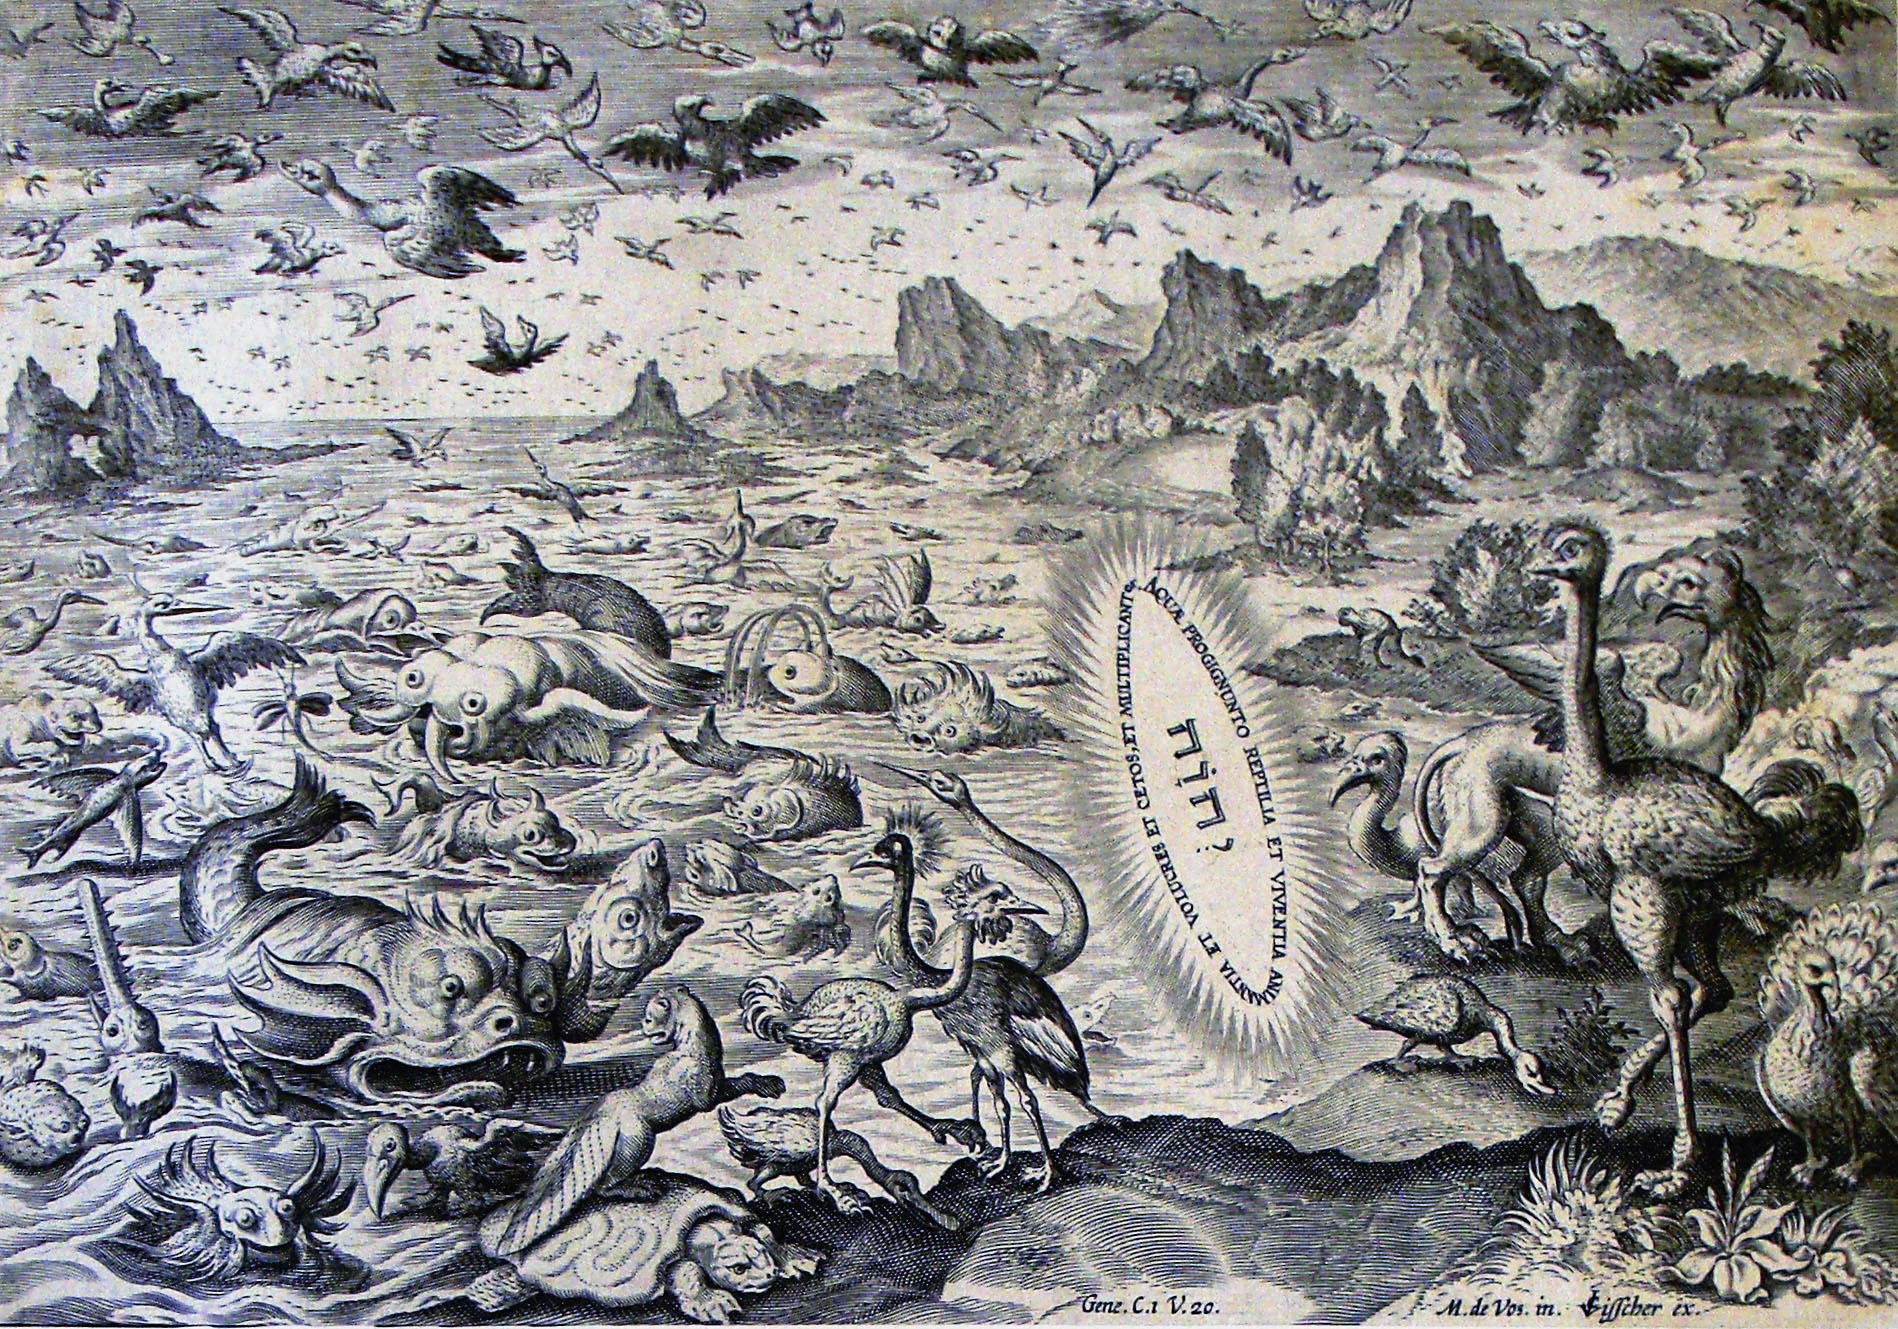 The Creation of the Animals According to the Bible. This engraving by M. De Vos illustrates verse 20 of the first chapter of Genesis, according to which the creatures of the sea and air were created simultaneously. The artist has drawn mostly imaginary creatures which might once have existed !